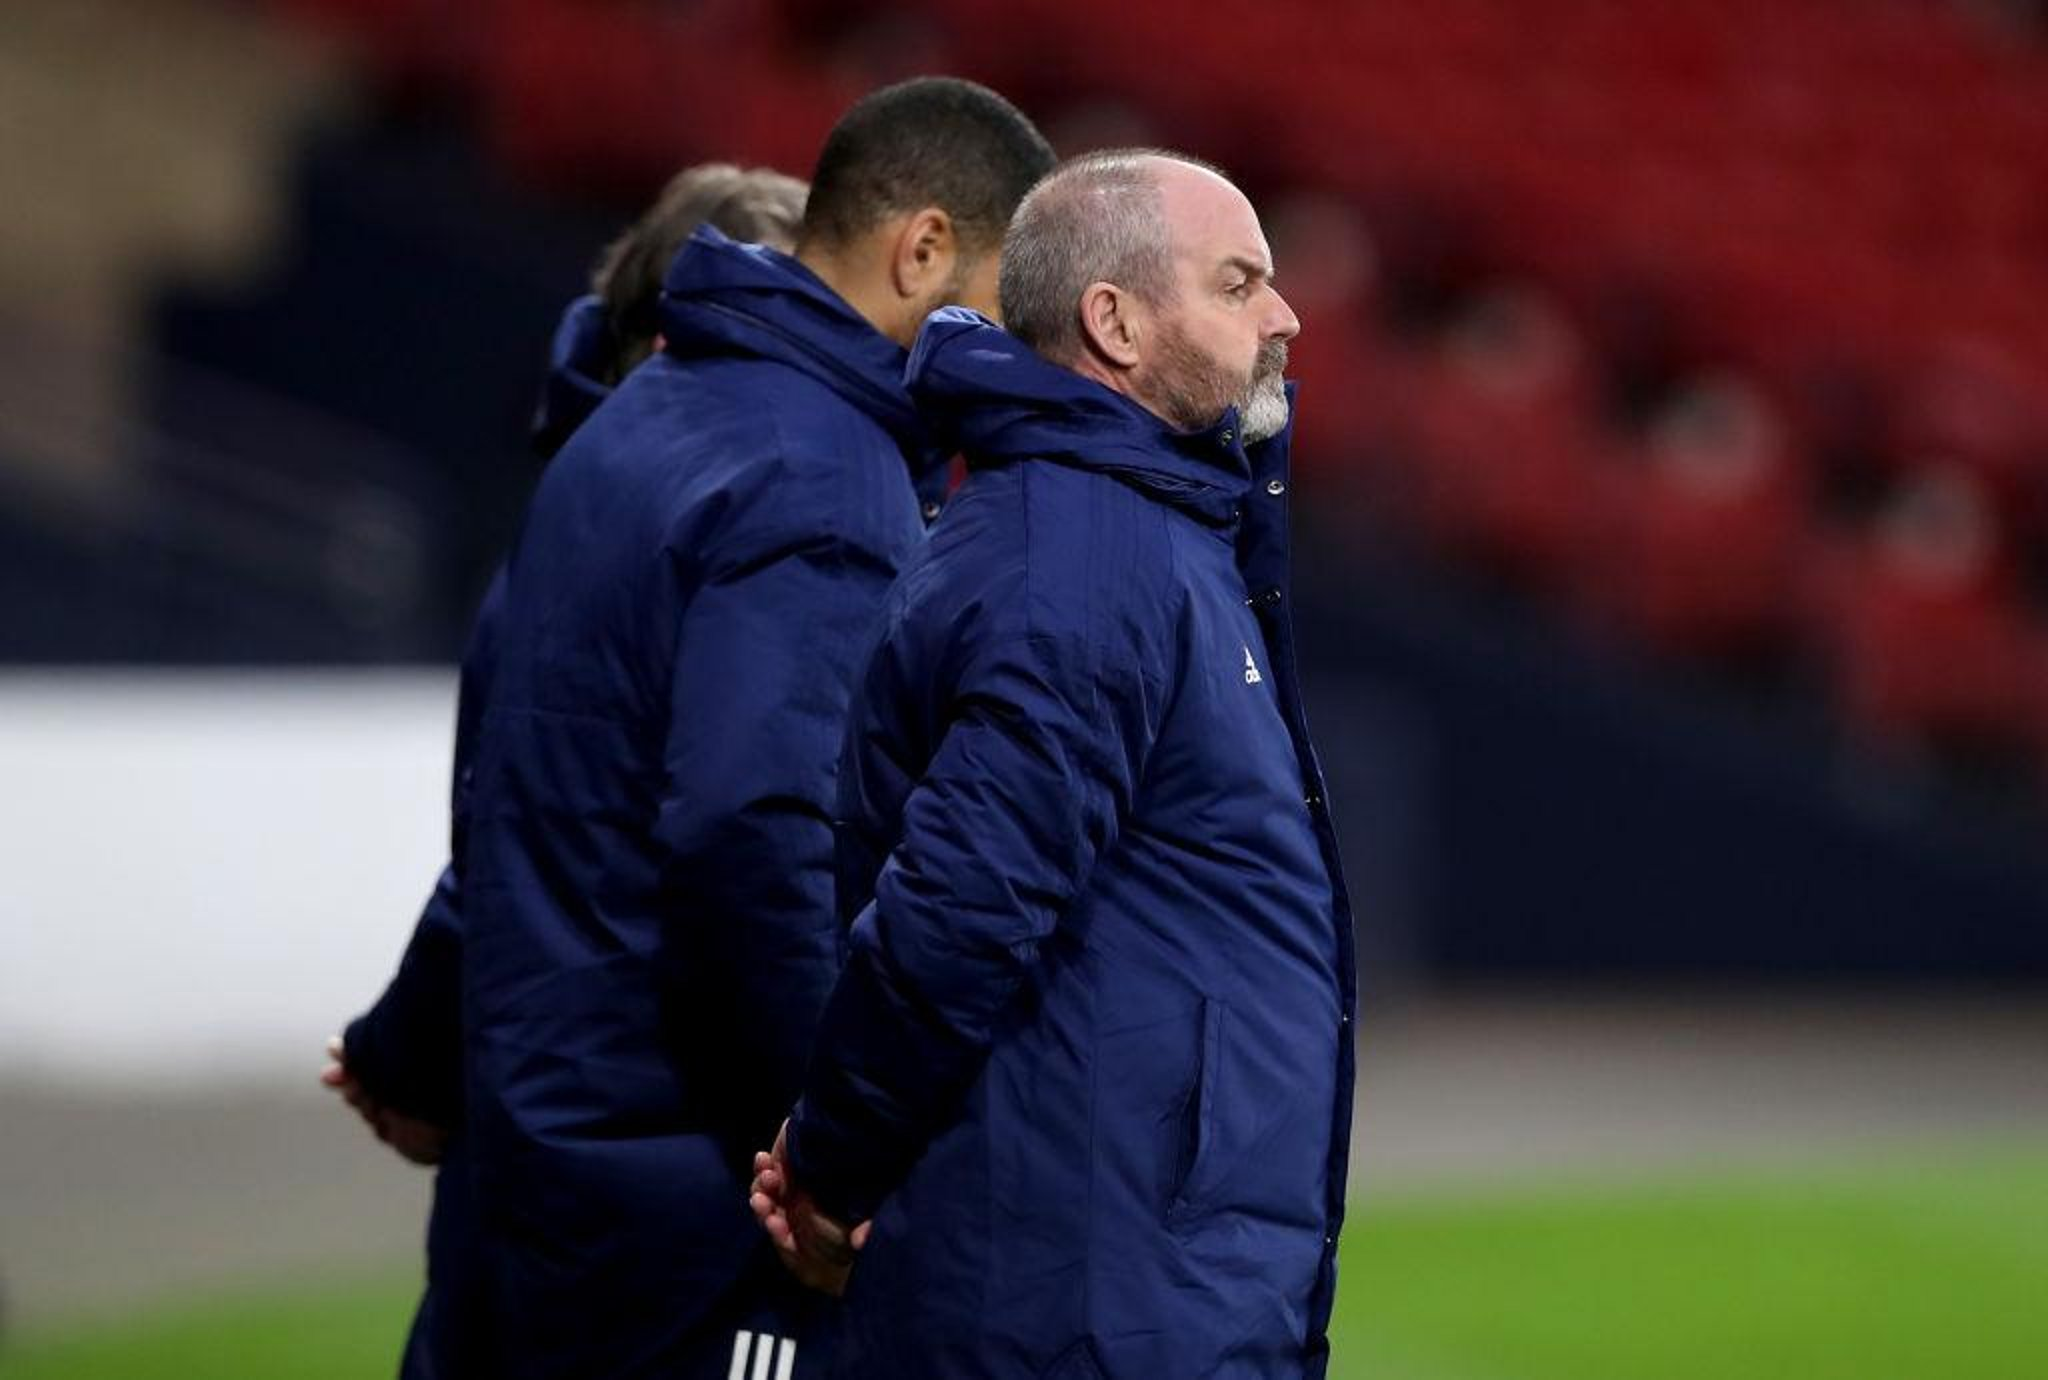 Billy Gilmour 'upset' by COVID test but chance for another Scotland hero, says Clarke